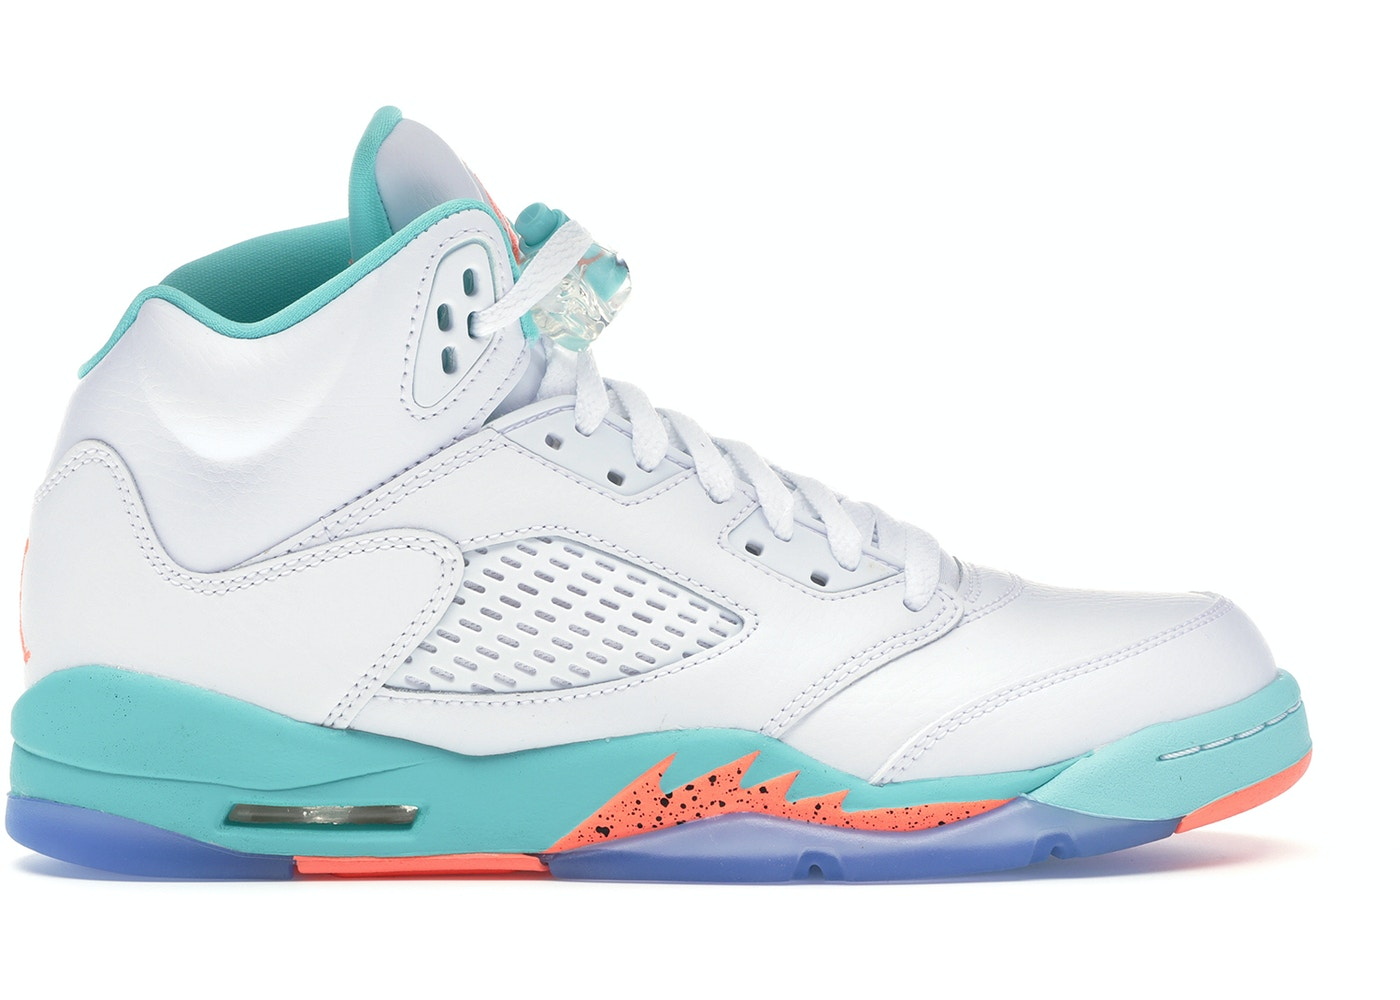 the best attitude 009b8 76394 Jordan 5 Retro Light Aqua (GS) - 440892-100